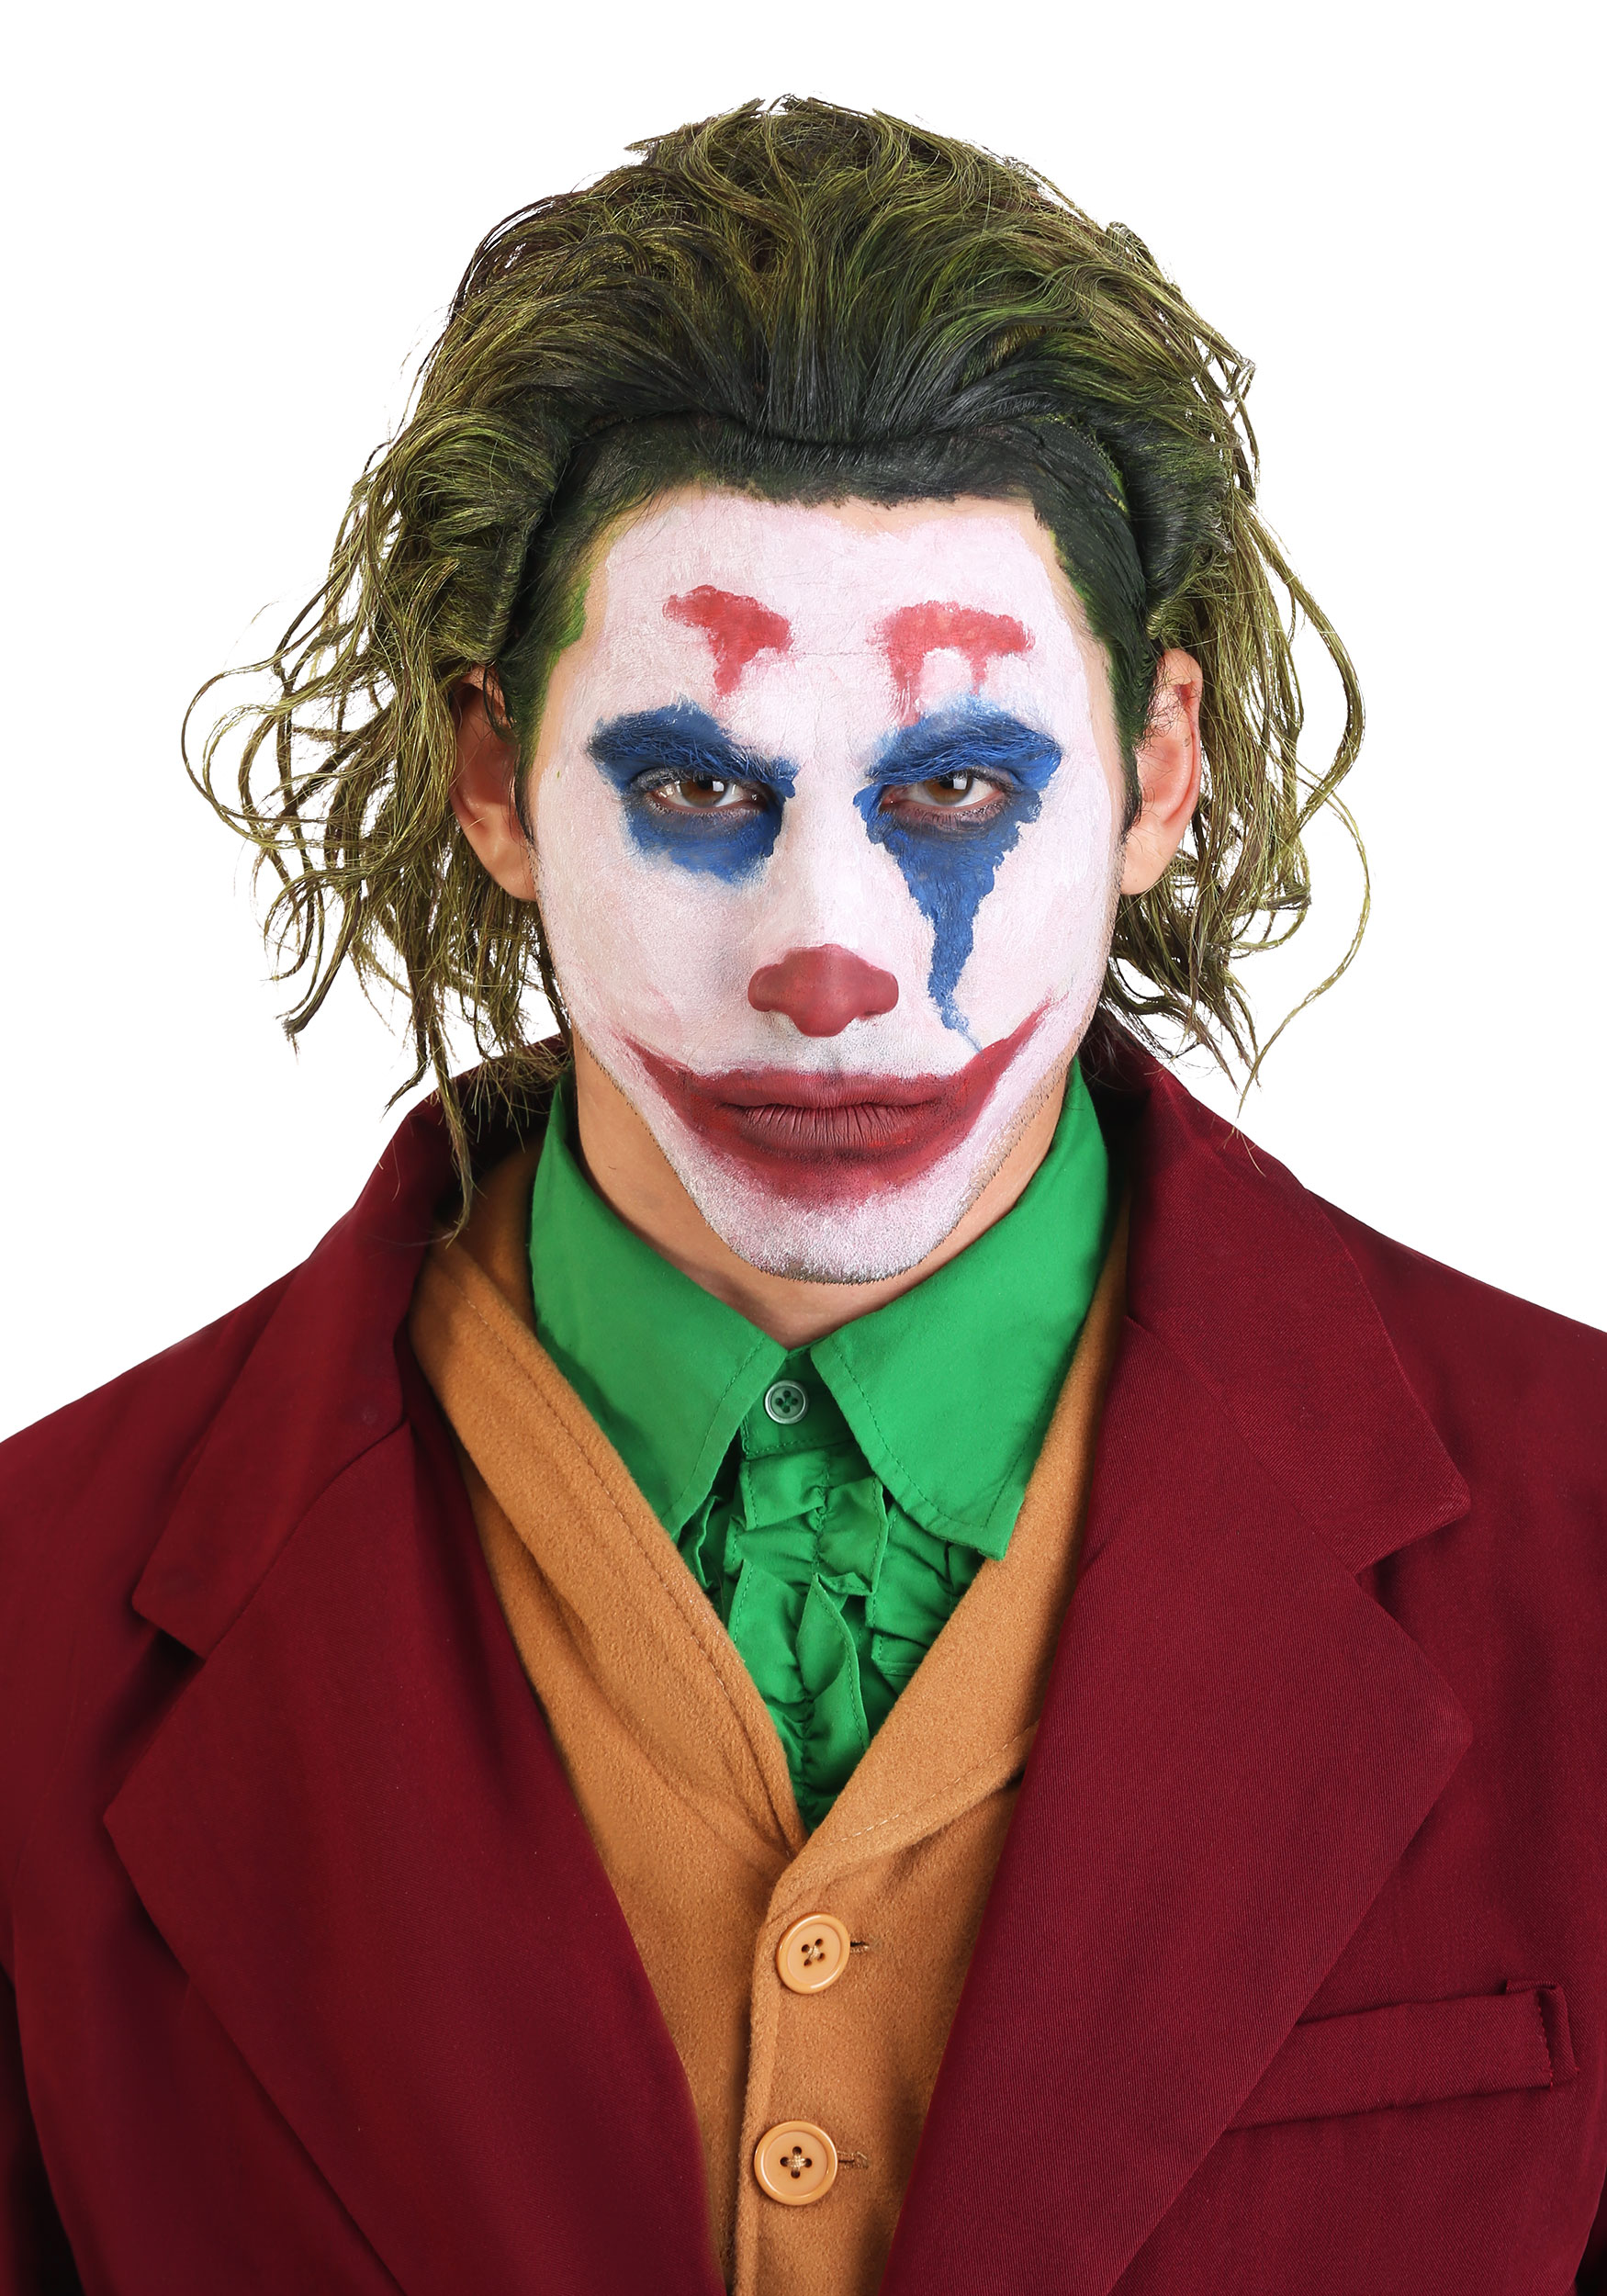 the completed joker look